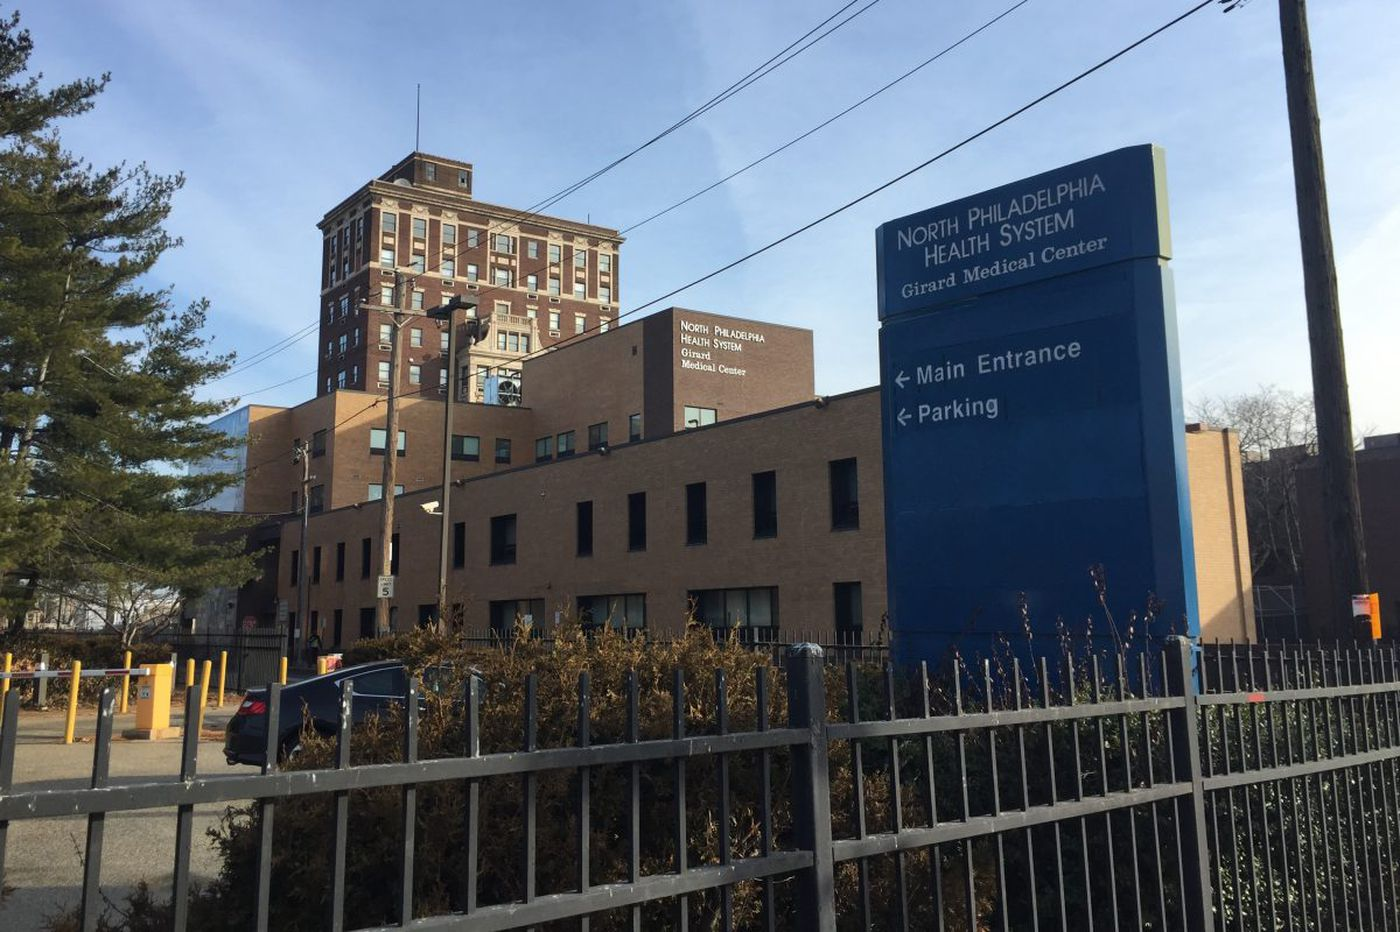 Sale of Girard Medical Center has a new closing date